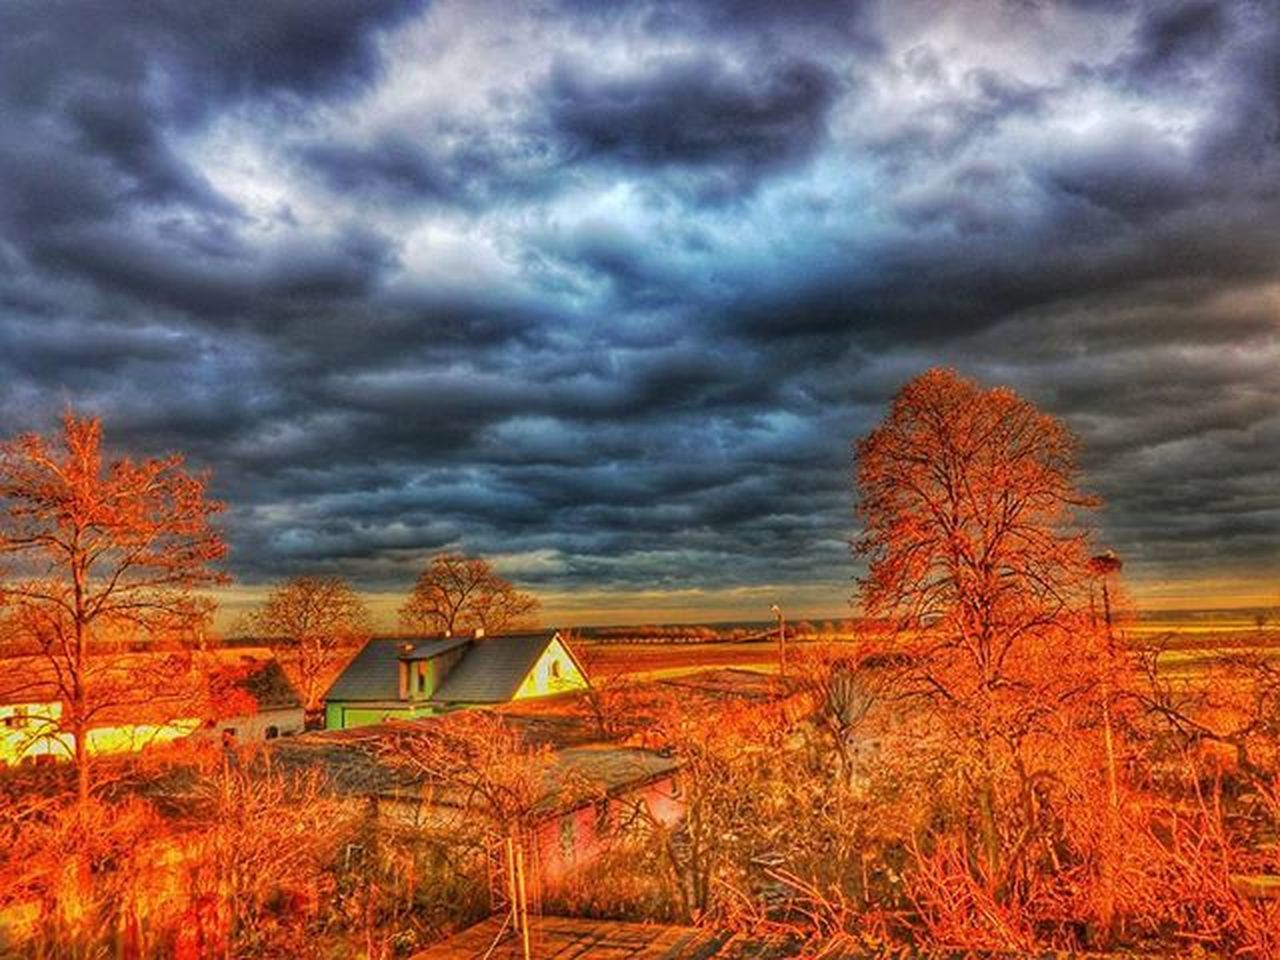 tree, cloud - sky, dramatic sky, sky, weather, outdoors, no people, nature, environment, storm cloud, landscape, field, tranquility, scenics, built structure, beauty in nature, architecture, day, thunderstorm